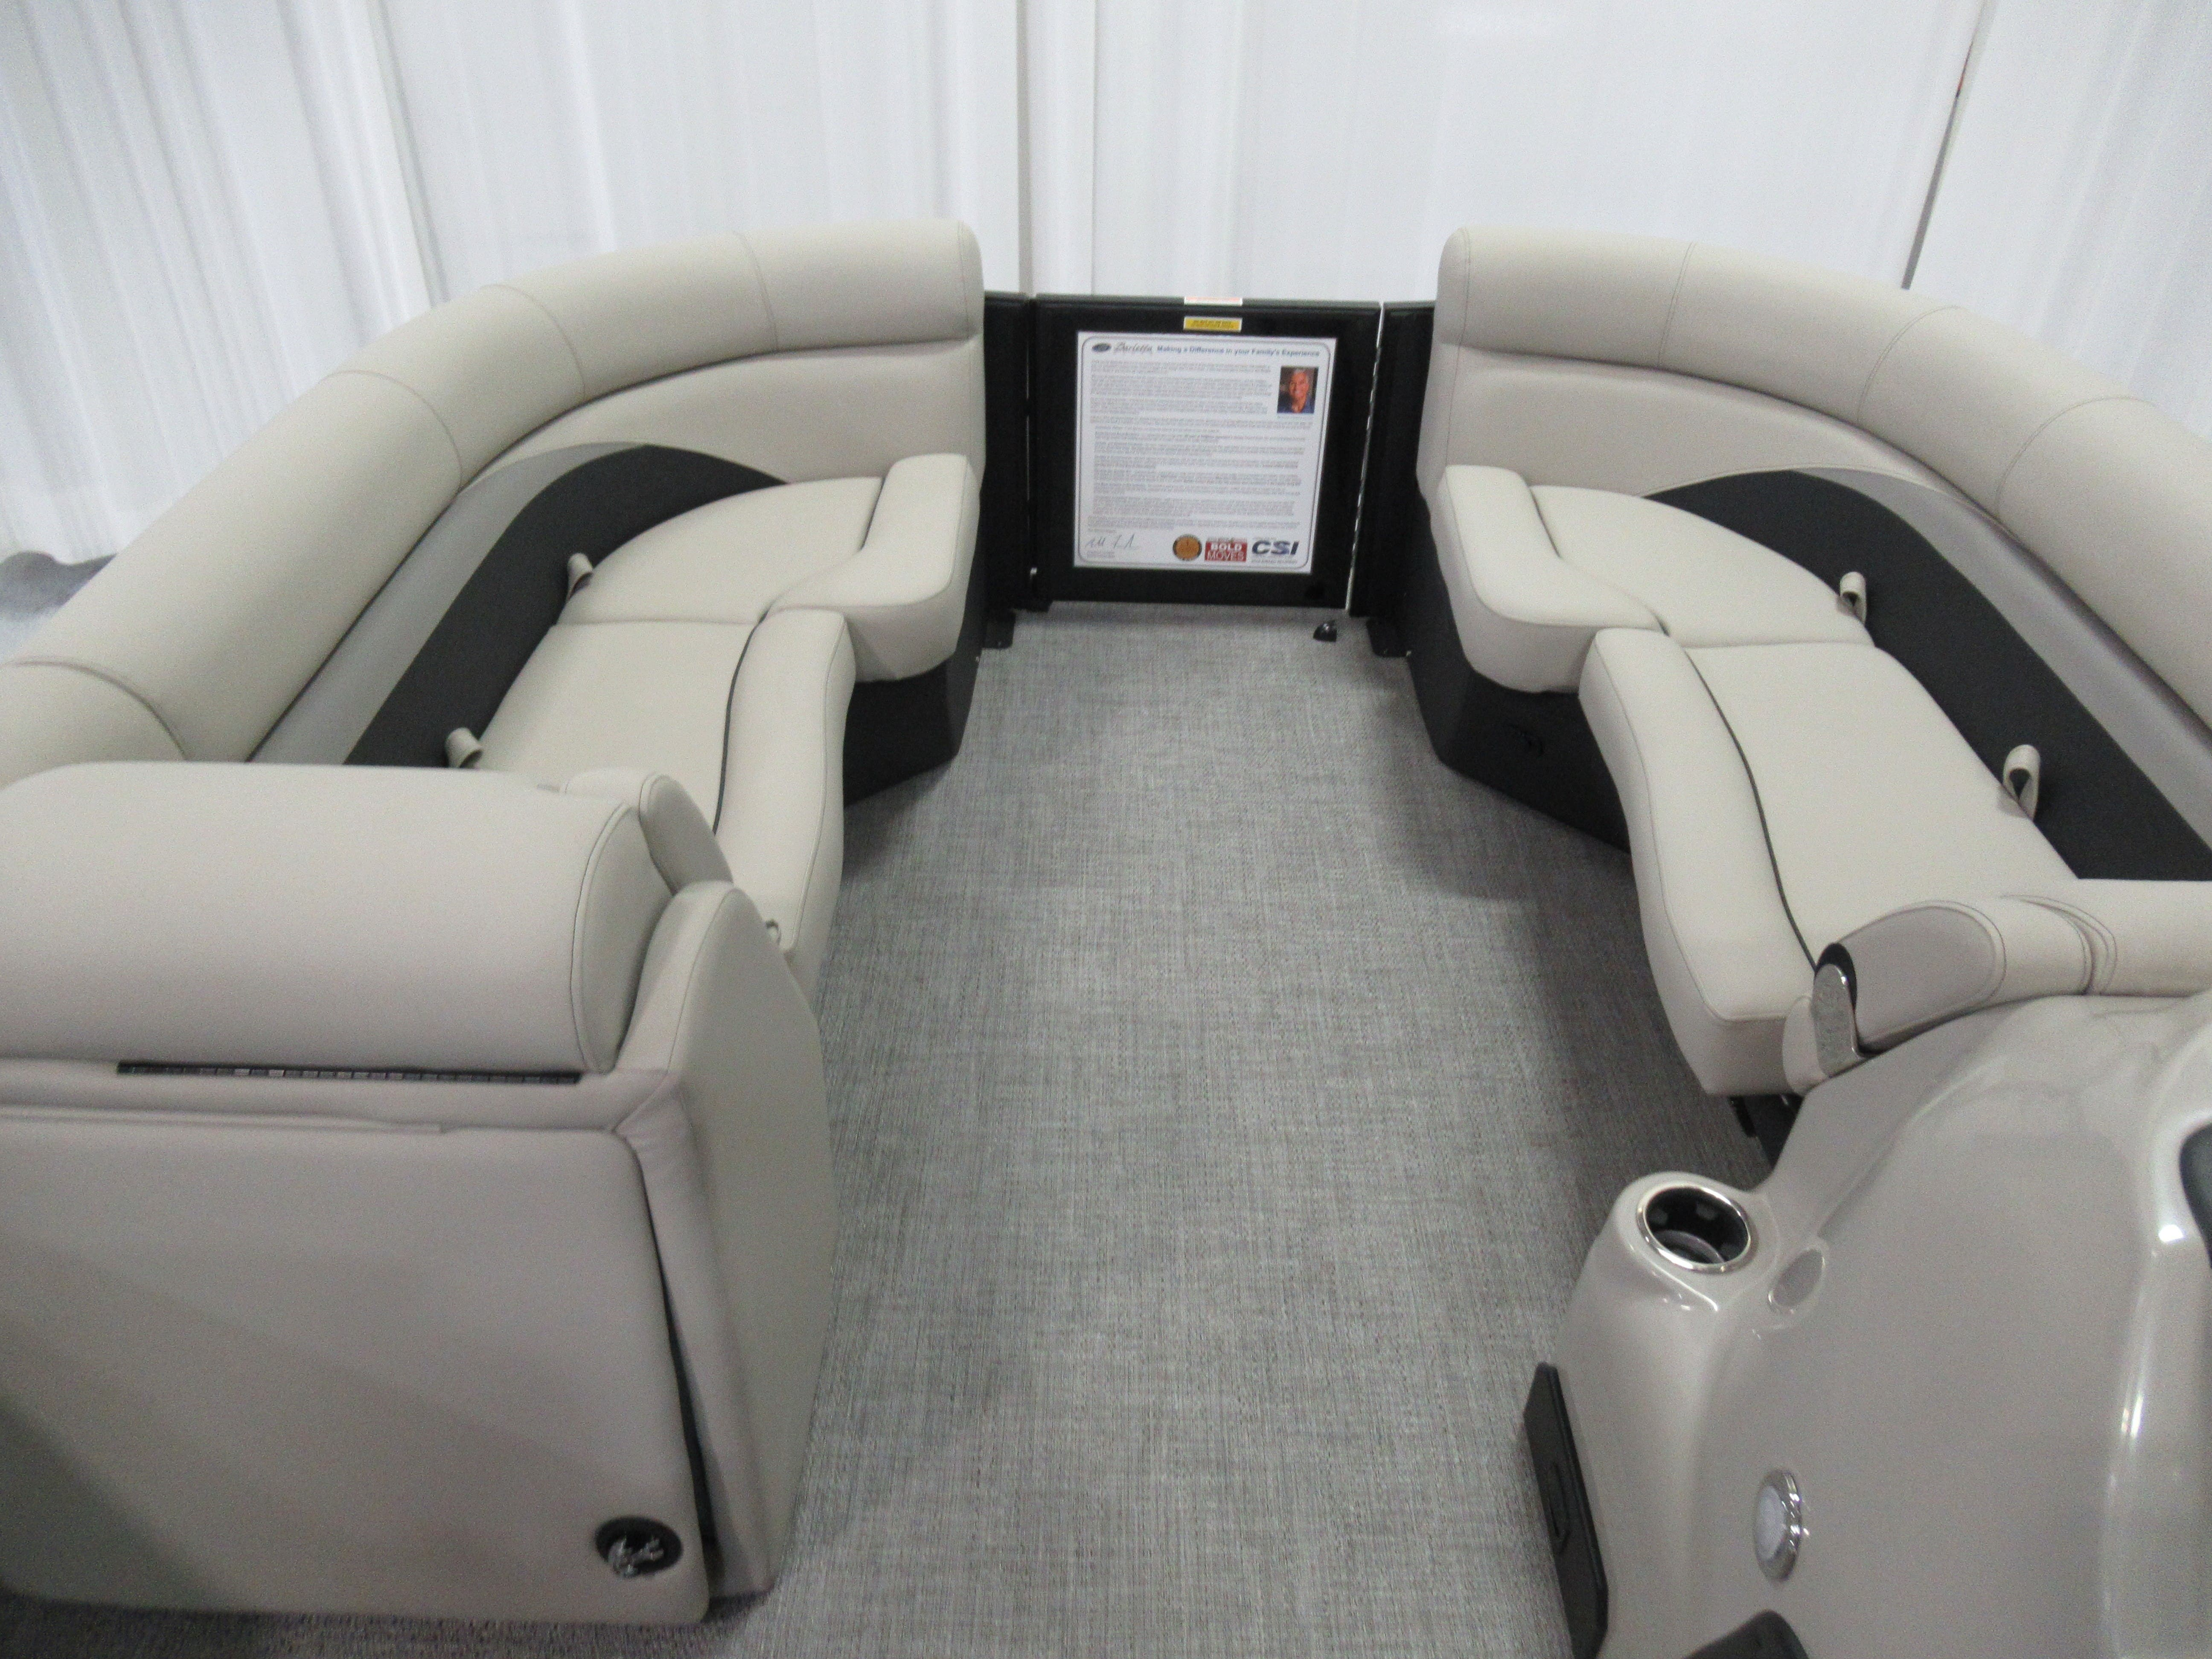 2021 Barletta boat for sale, model of the boat is C22qc & Image # 3 of 11